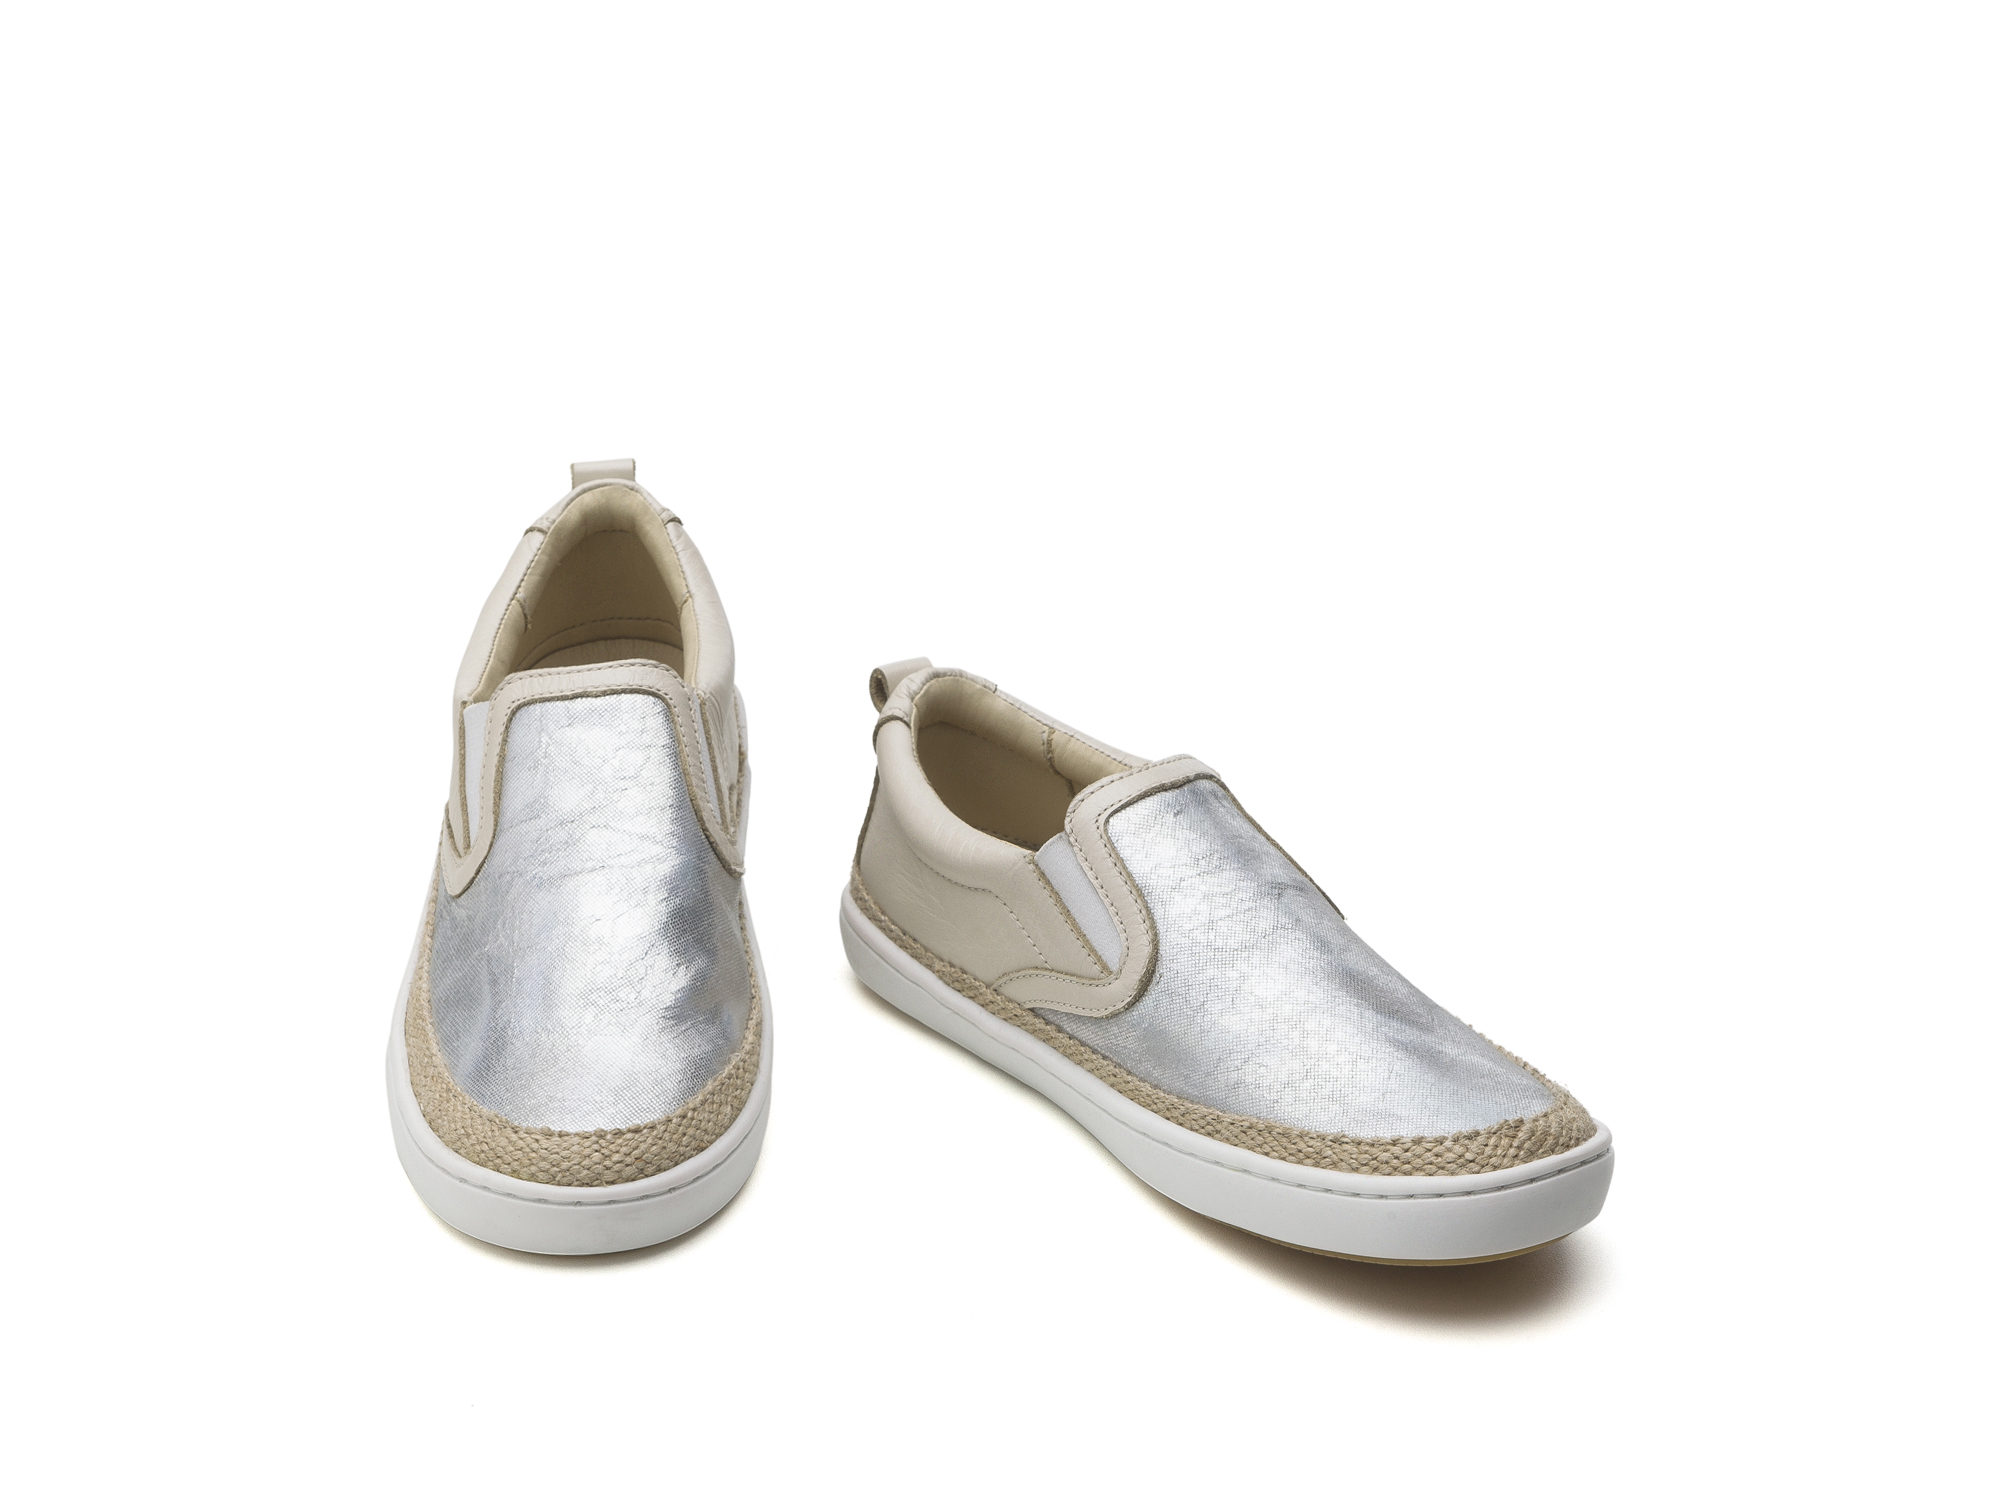 Tênis Straw Sea Sparkle/ Antique White Junior 4 à 8 anos - 2